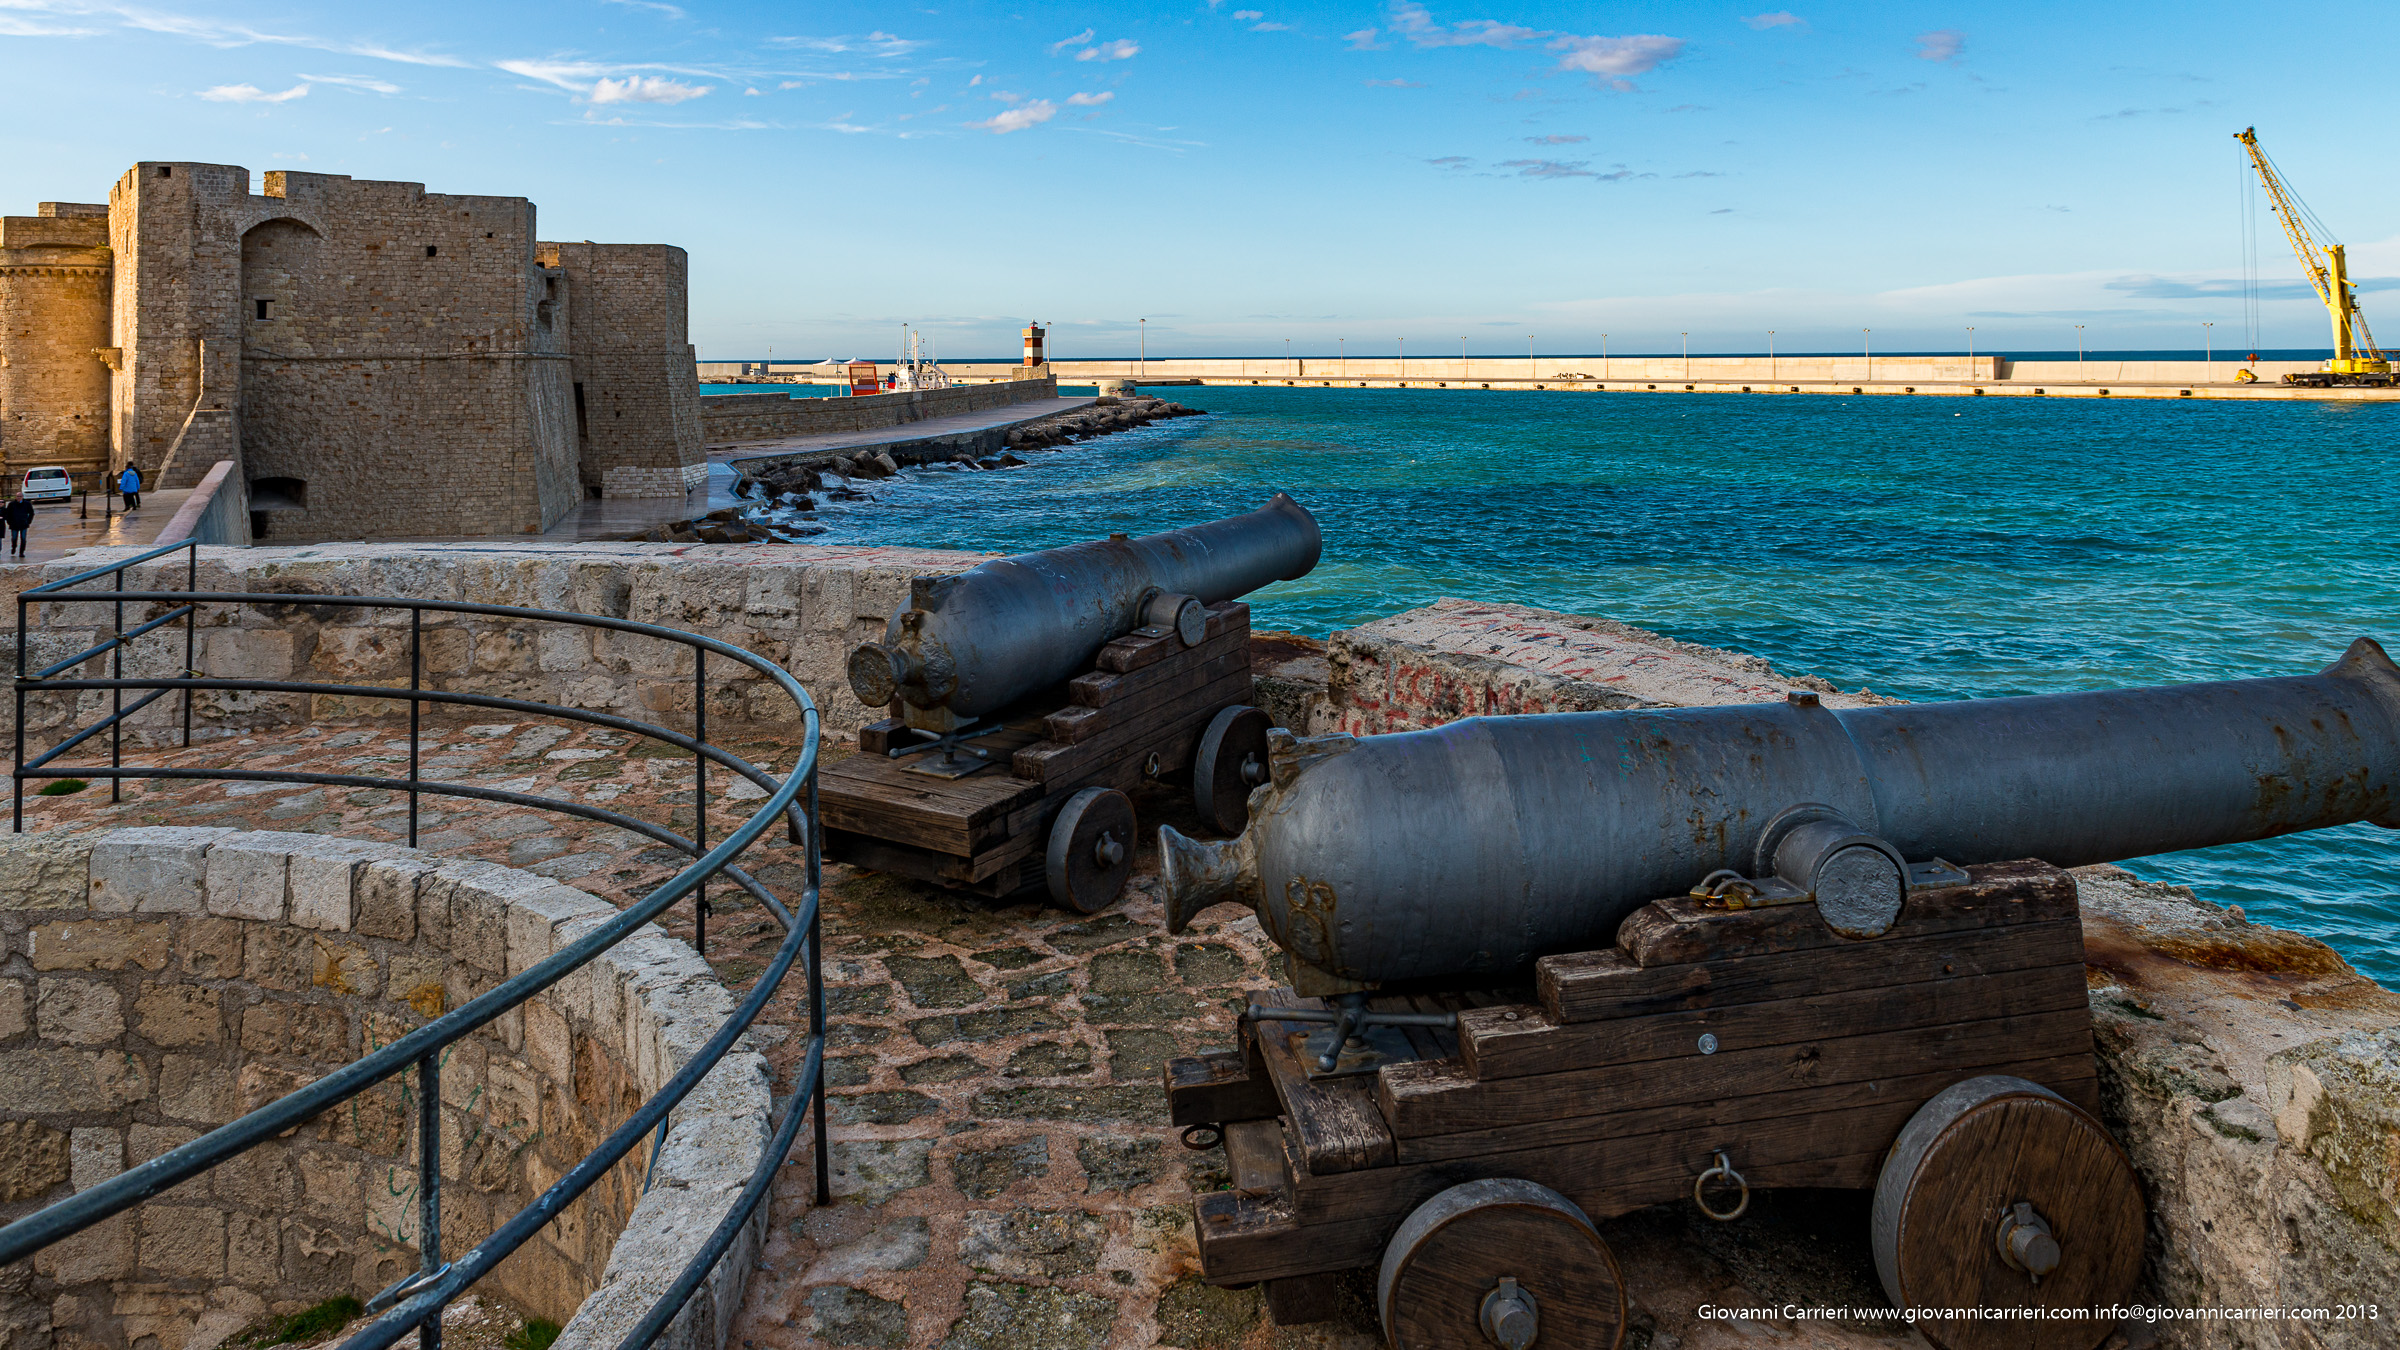 Photographs of Monopoli